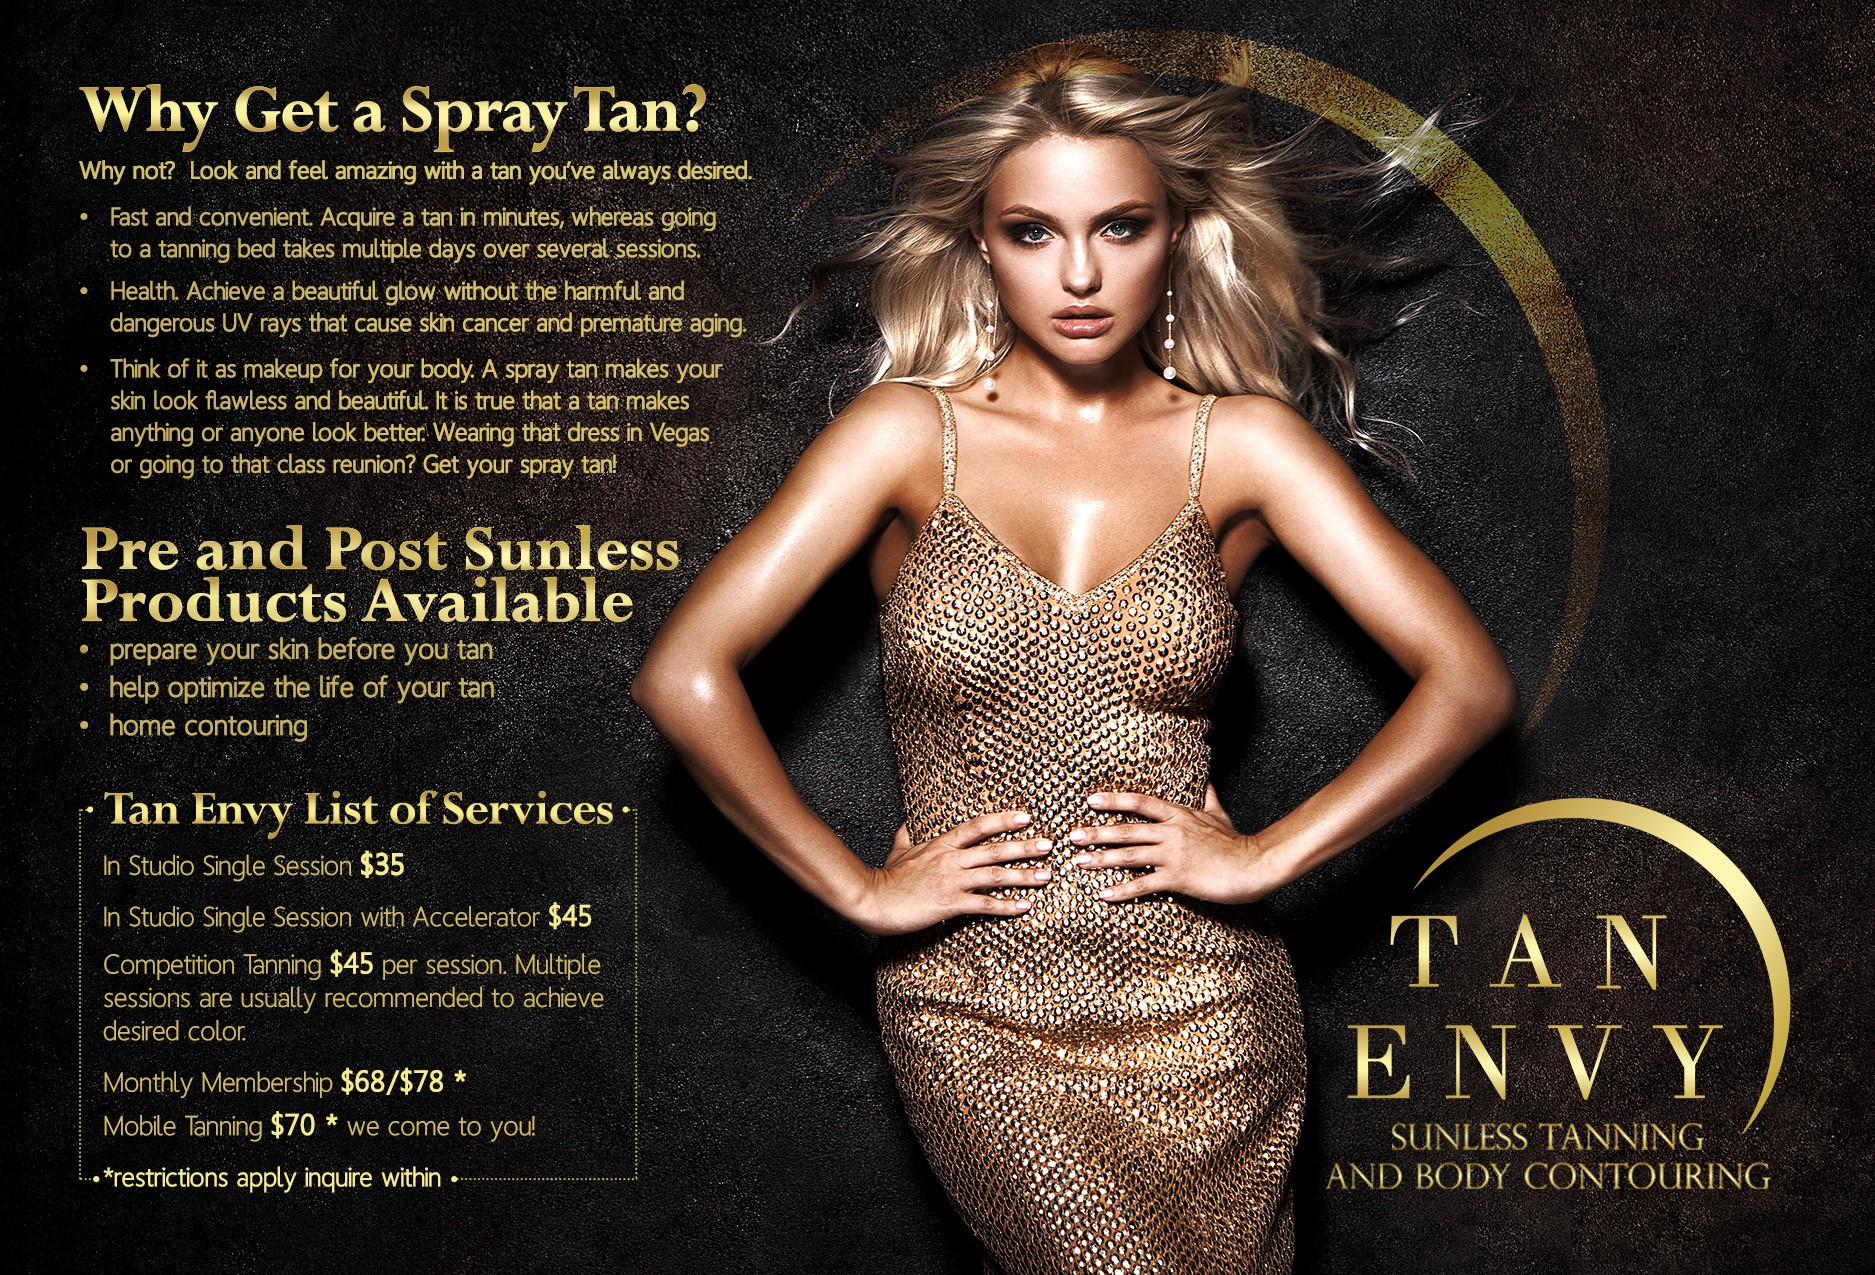 Spray tan studio seeking sexy, eye catching postcard ad.